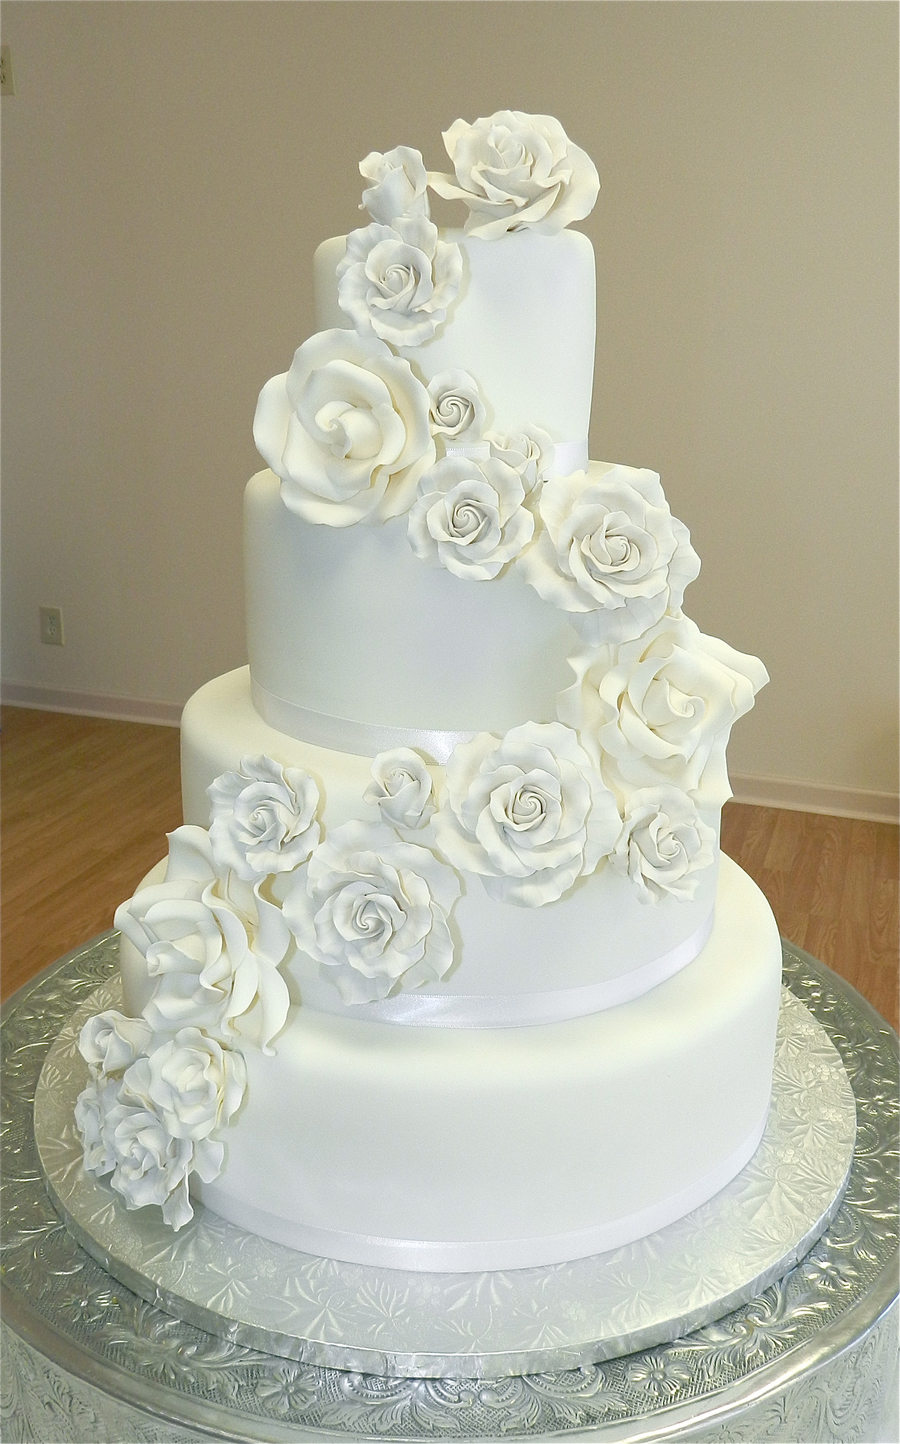 White Roses Wedding Cake On Central